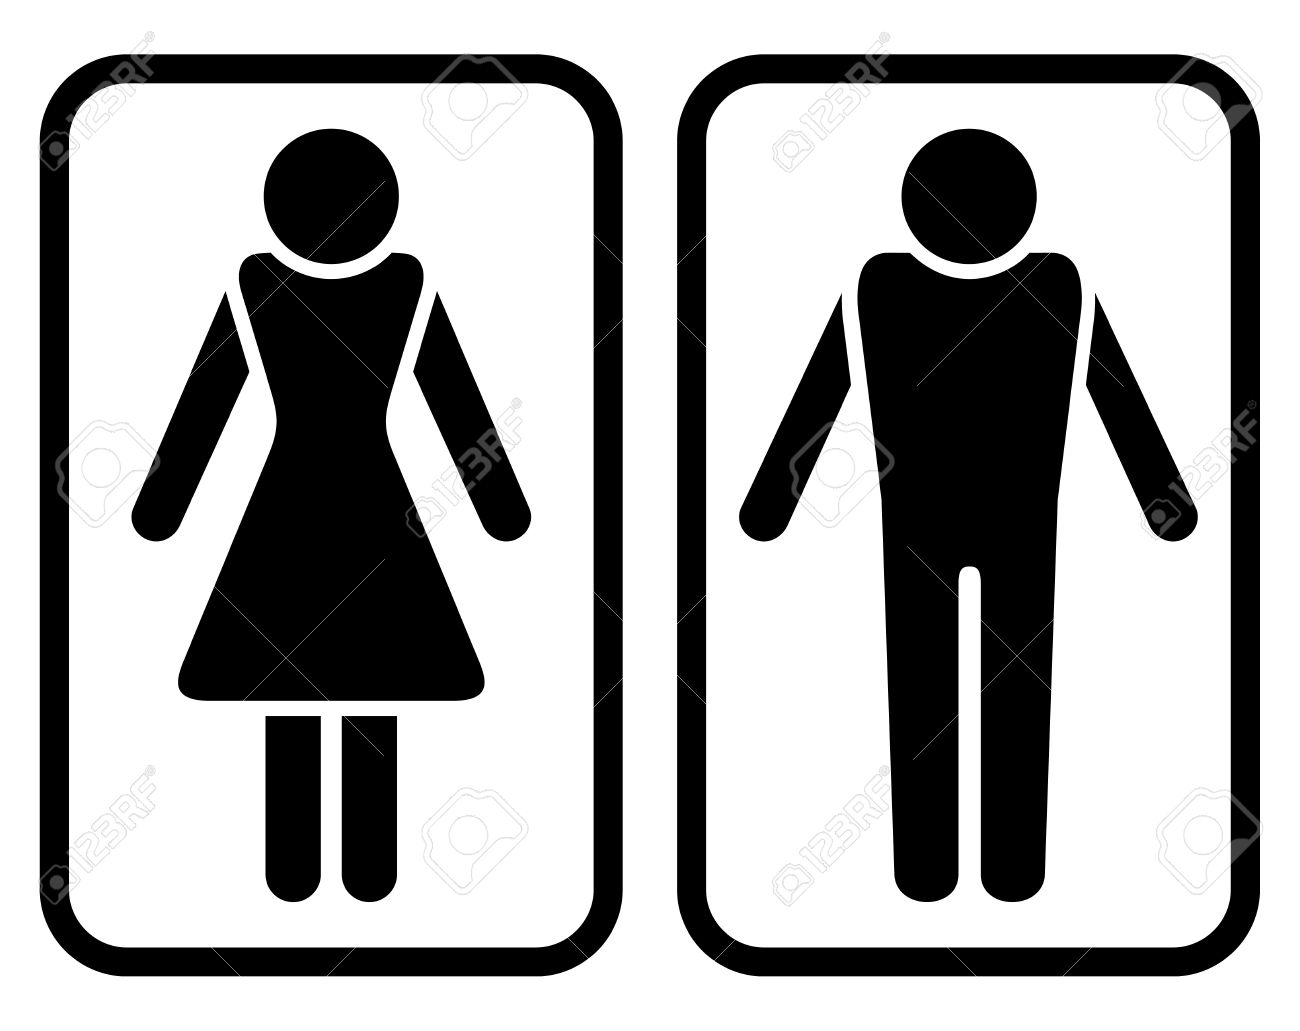 Male Female Bathroom Symbols Male Female Toilet Symbols  Kalecelikkapi24